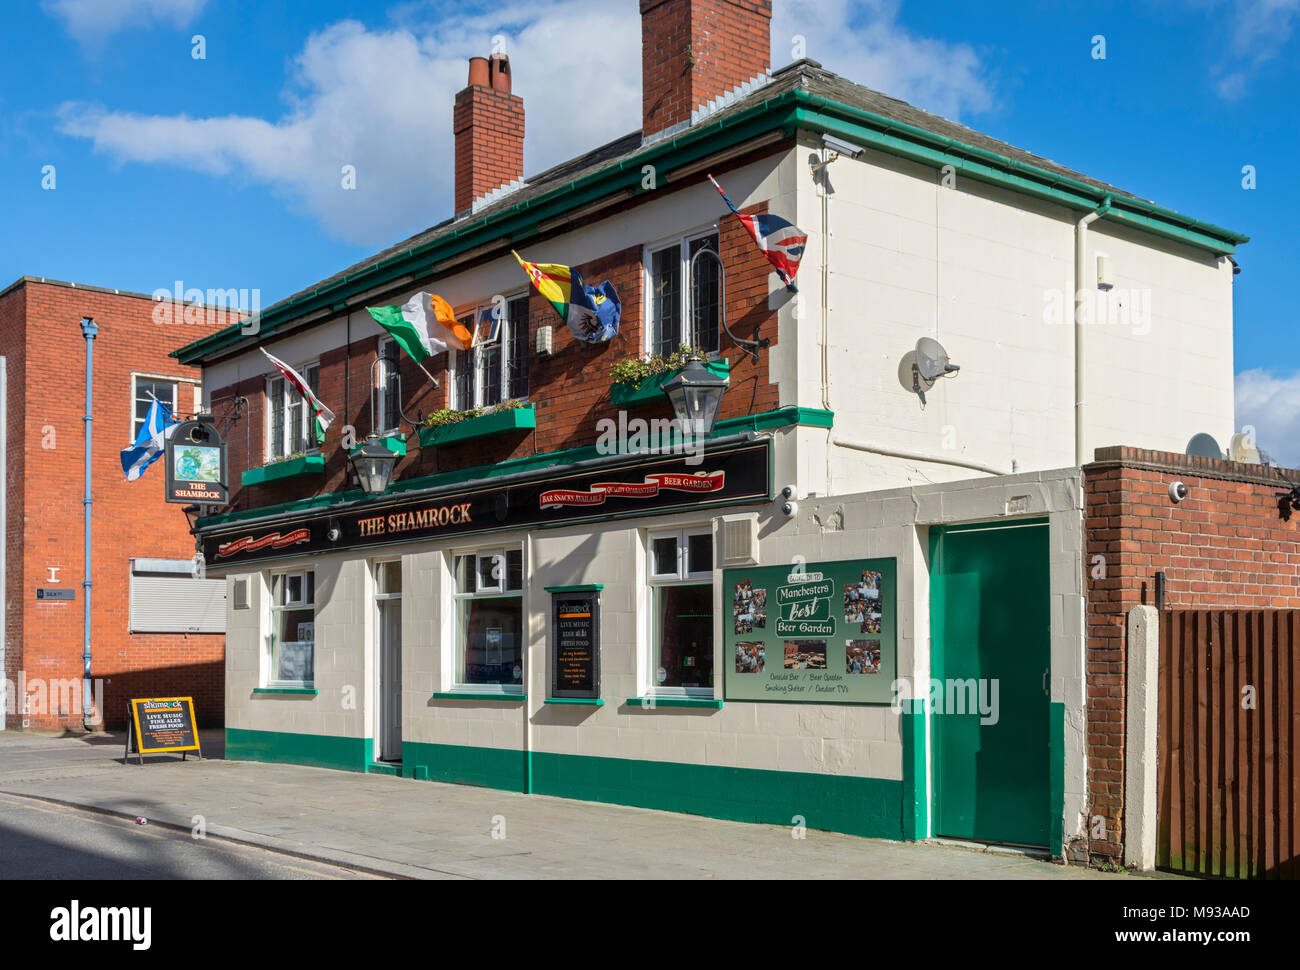 The Shamrock public house, Ancoats, Manchester, England, UK - Stock Image